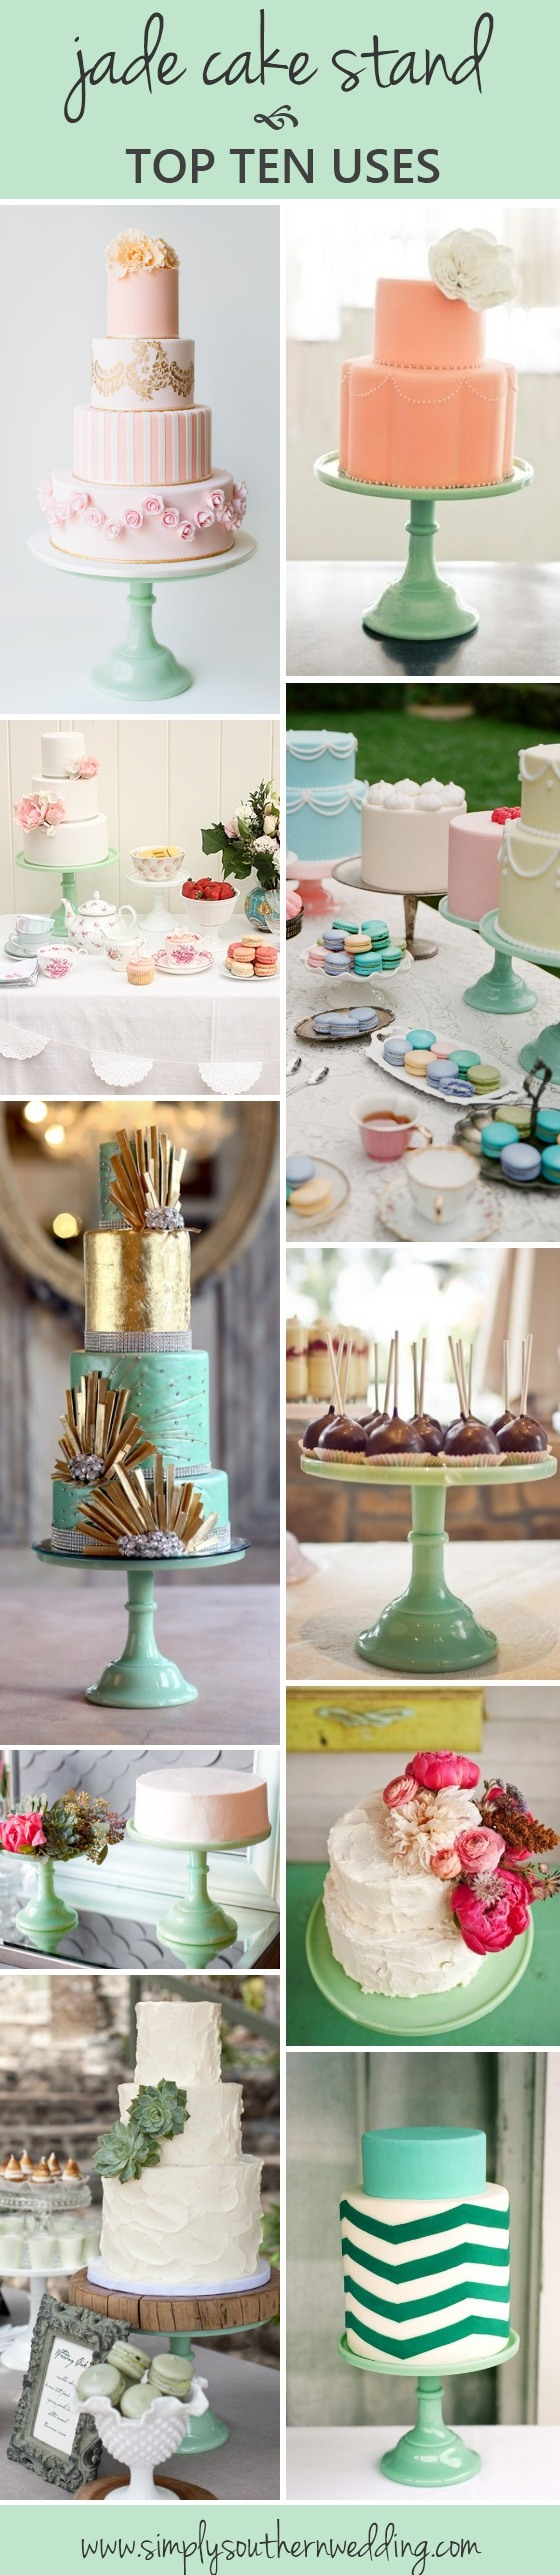 mint green in weddings - jade cake stand